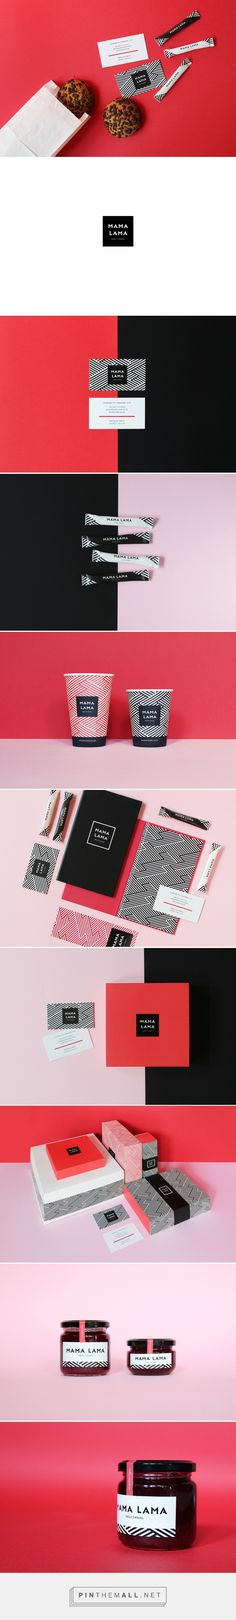 Mama Lama Cafe Branding by Canape Agency   Fivestar Branding Agency – Design and Branding Agency & Curated Inspiration Gallery #cafe #cafebranding #branding #brand #design #designinspiration #brandinginspiration